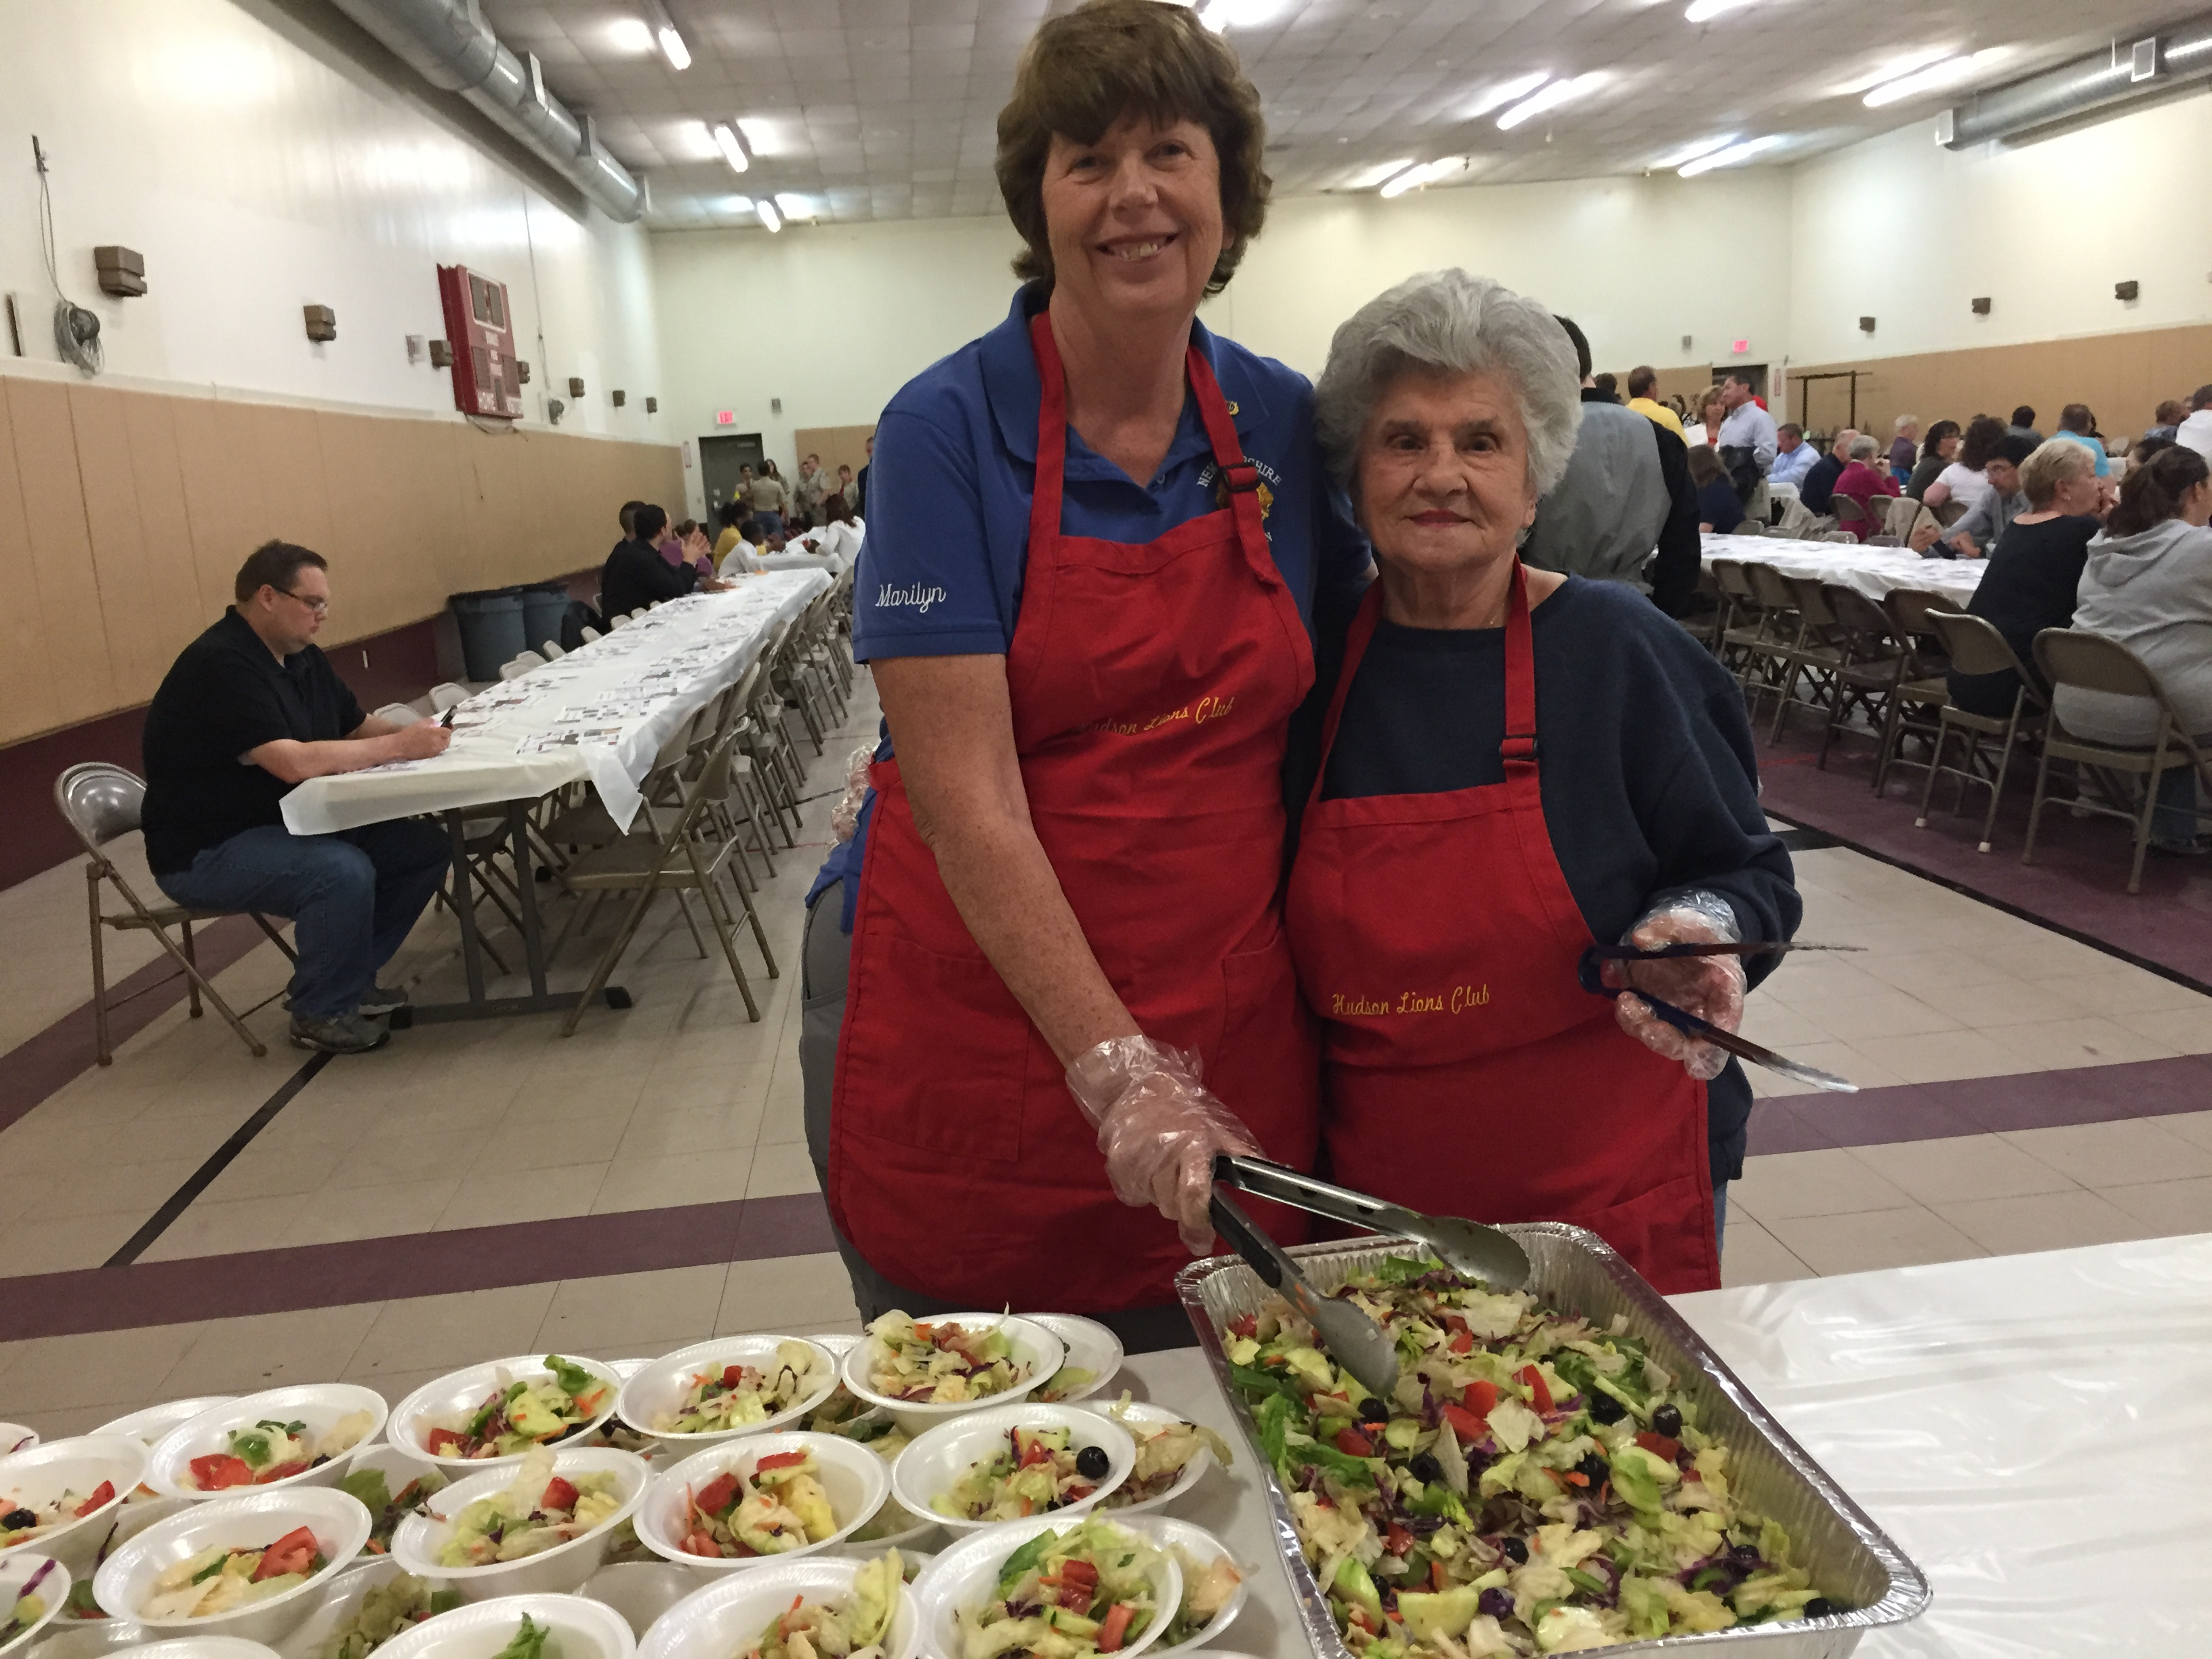 Marilyn Richardson and Maria Vaccaro serving salad.